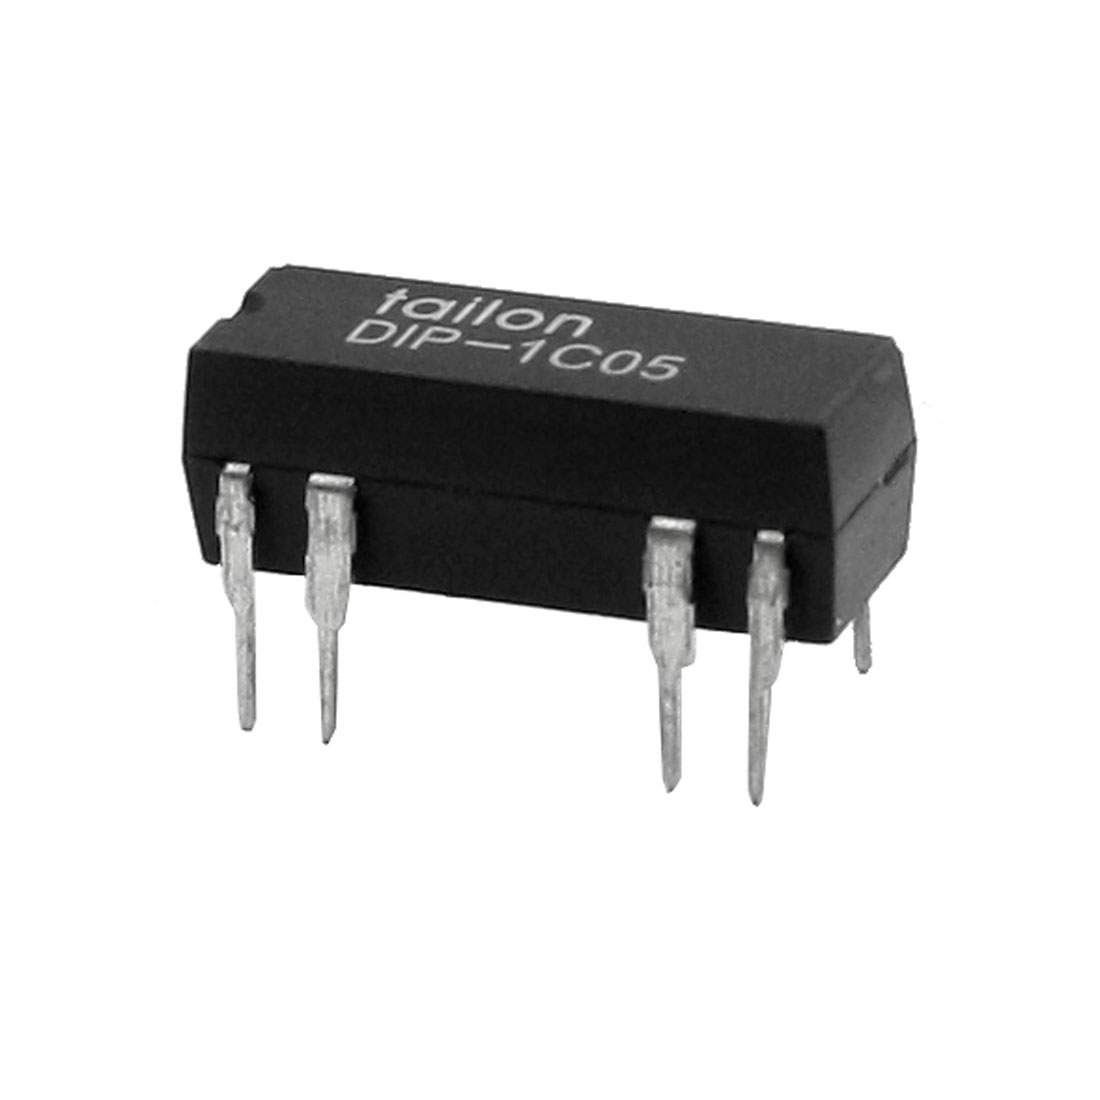 Epoxy Molded 8 Pin DIP-1C05 DIP Series Reed Relay Black DC5V 1A